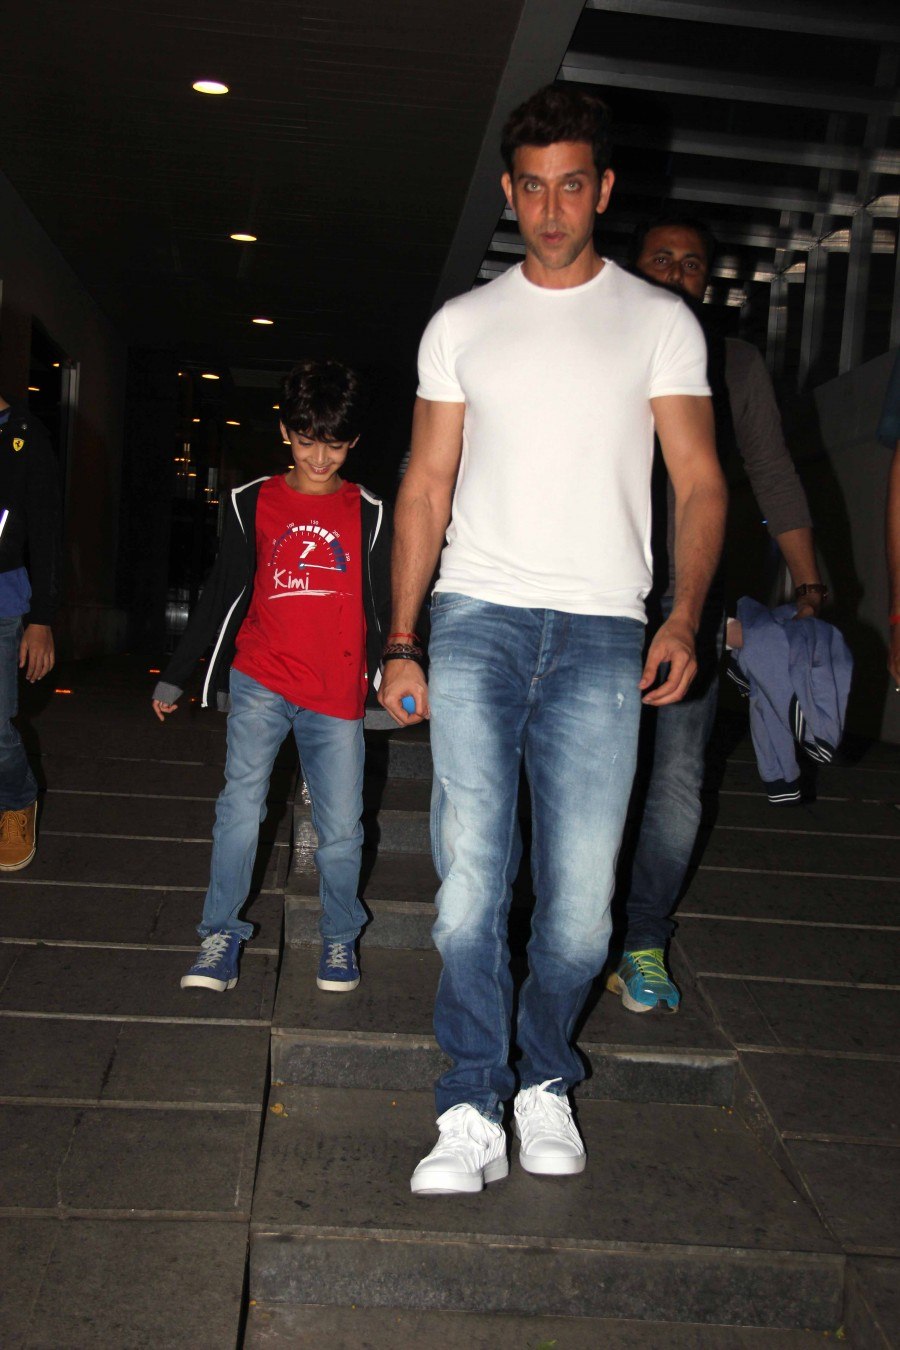 Hrithik Roshan,Hrithik Roshan spotted with his son,Hrithik Roshan with his son,Hrithik Roshan Son,Hrithik Roshan at Bandra,Hrithik Roshan pics,Hrithik Roshan images,Hrithik Roshan photos,Hrithik Roshan stills,Hrithik Roshan pictures